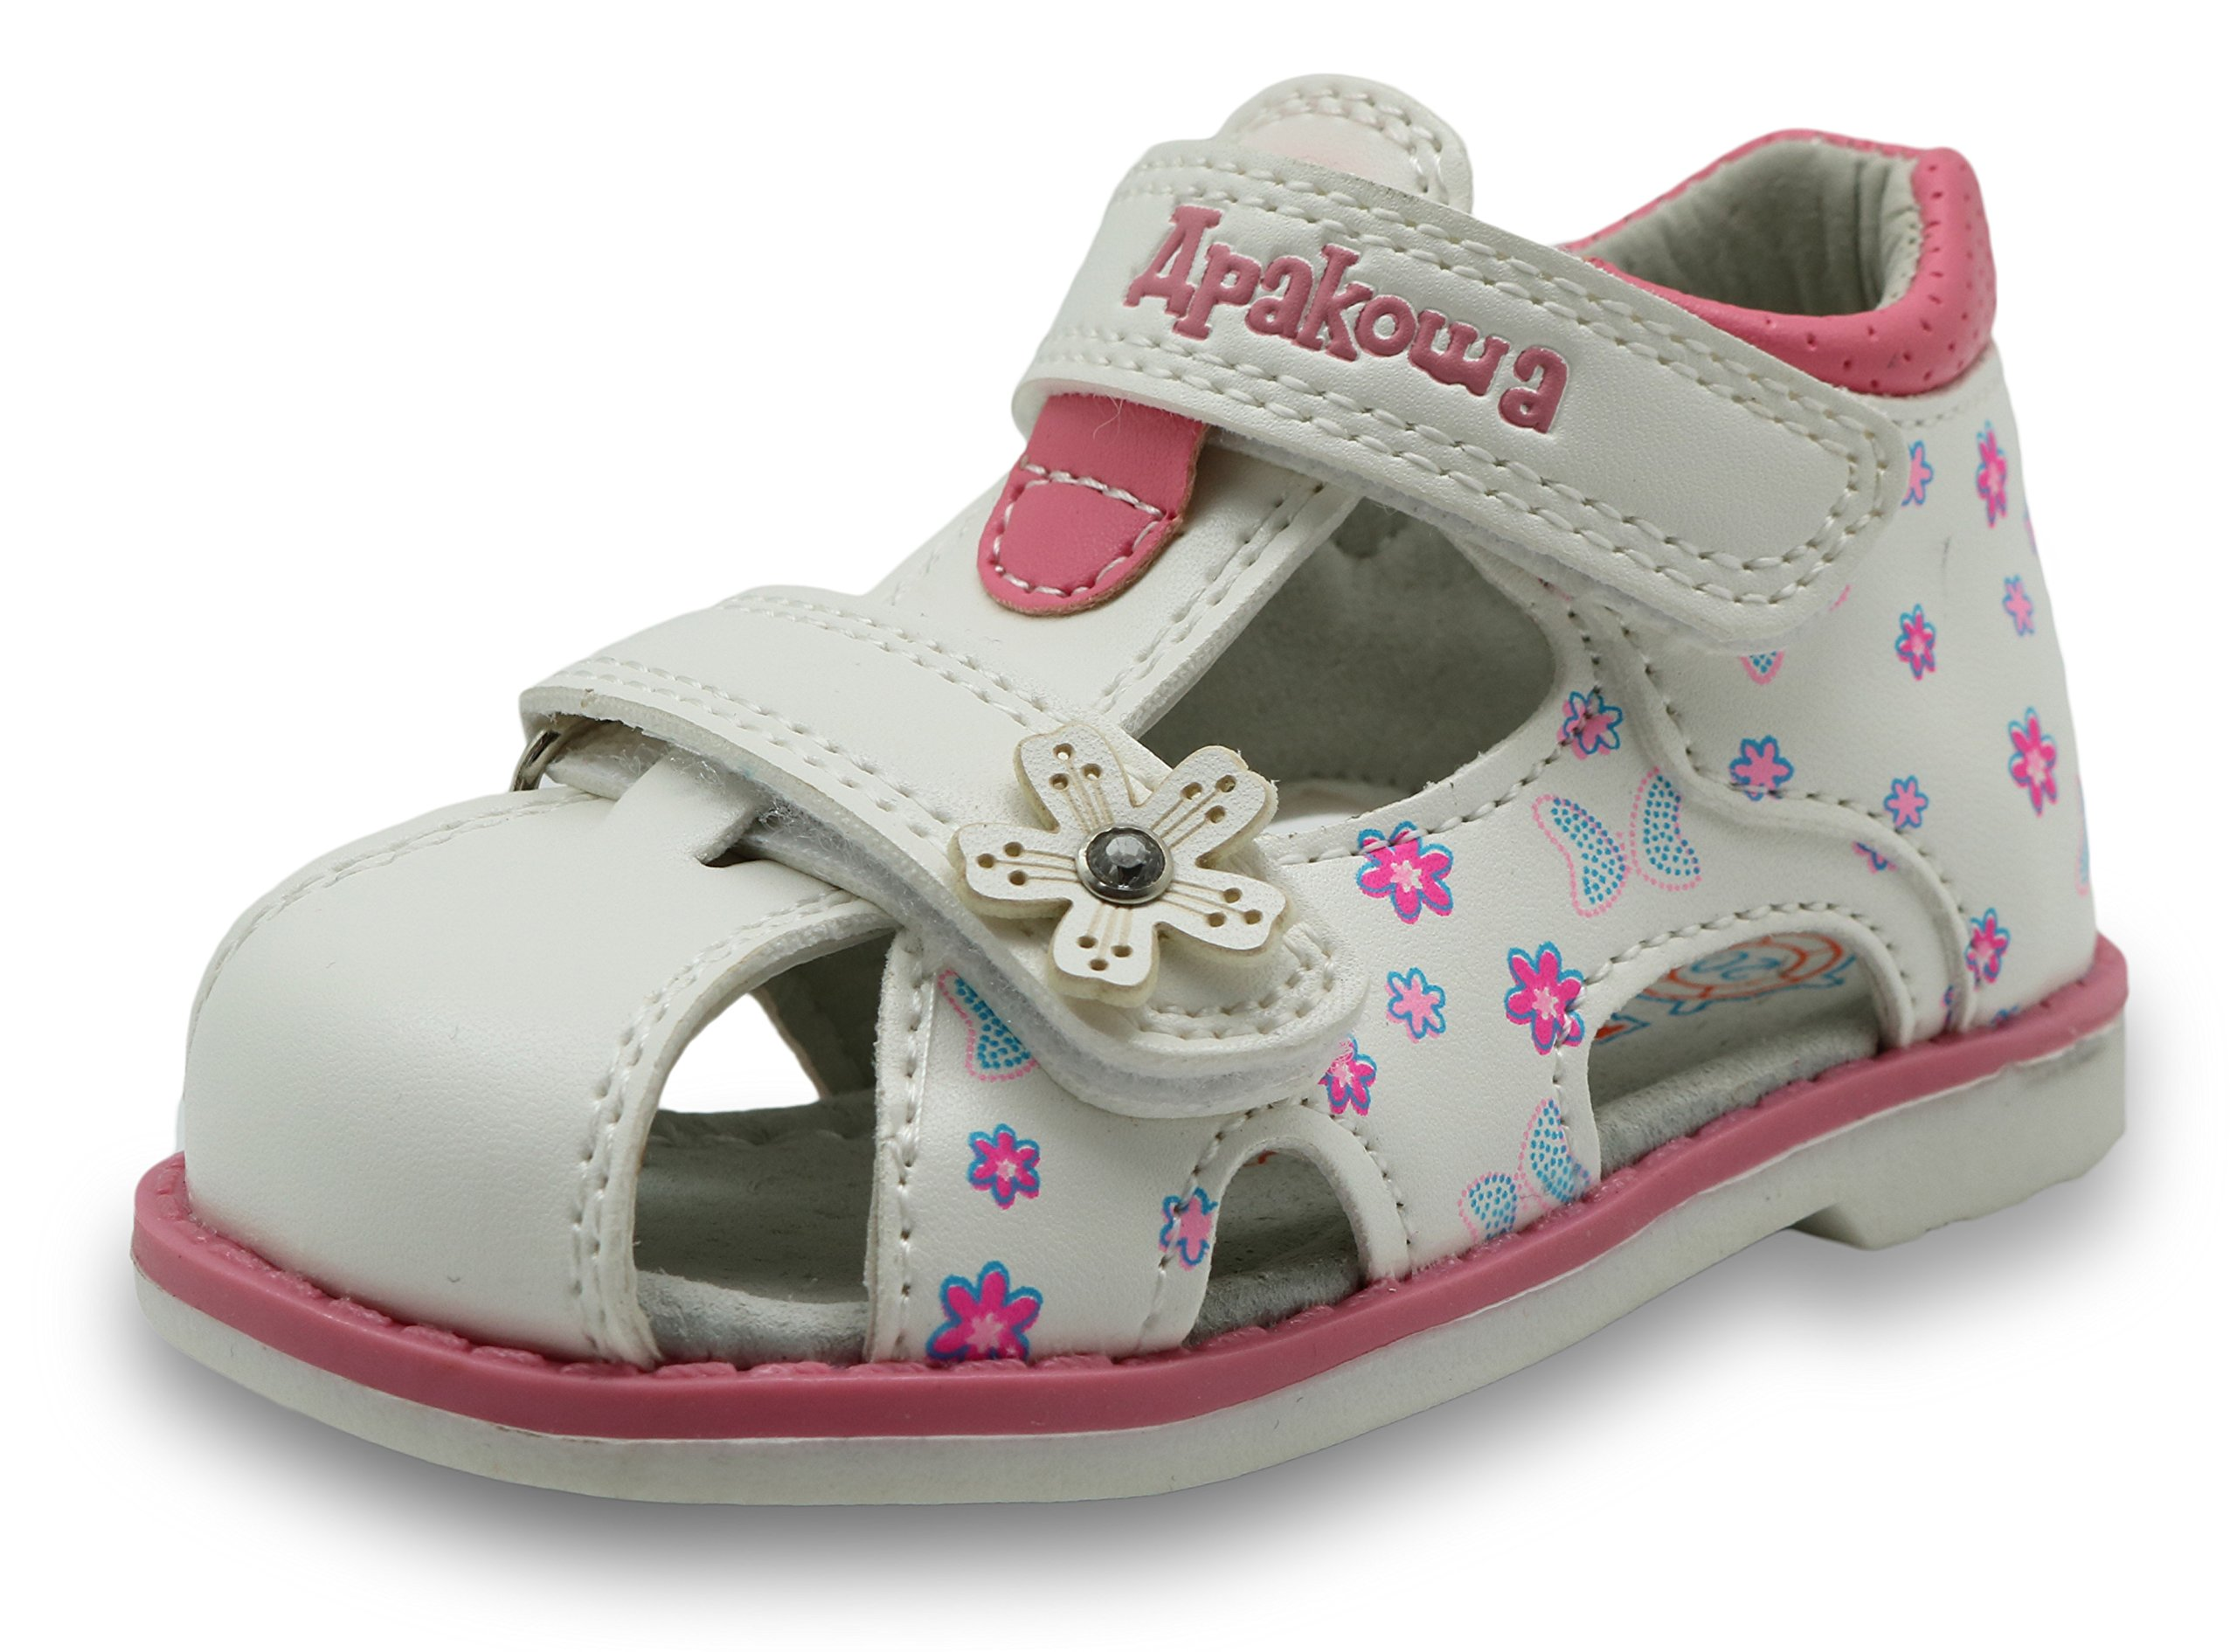 Apakowa Boy's and Girl's Double Adjustable Strap Closed-Toe Sandals (Toddler)